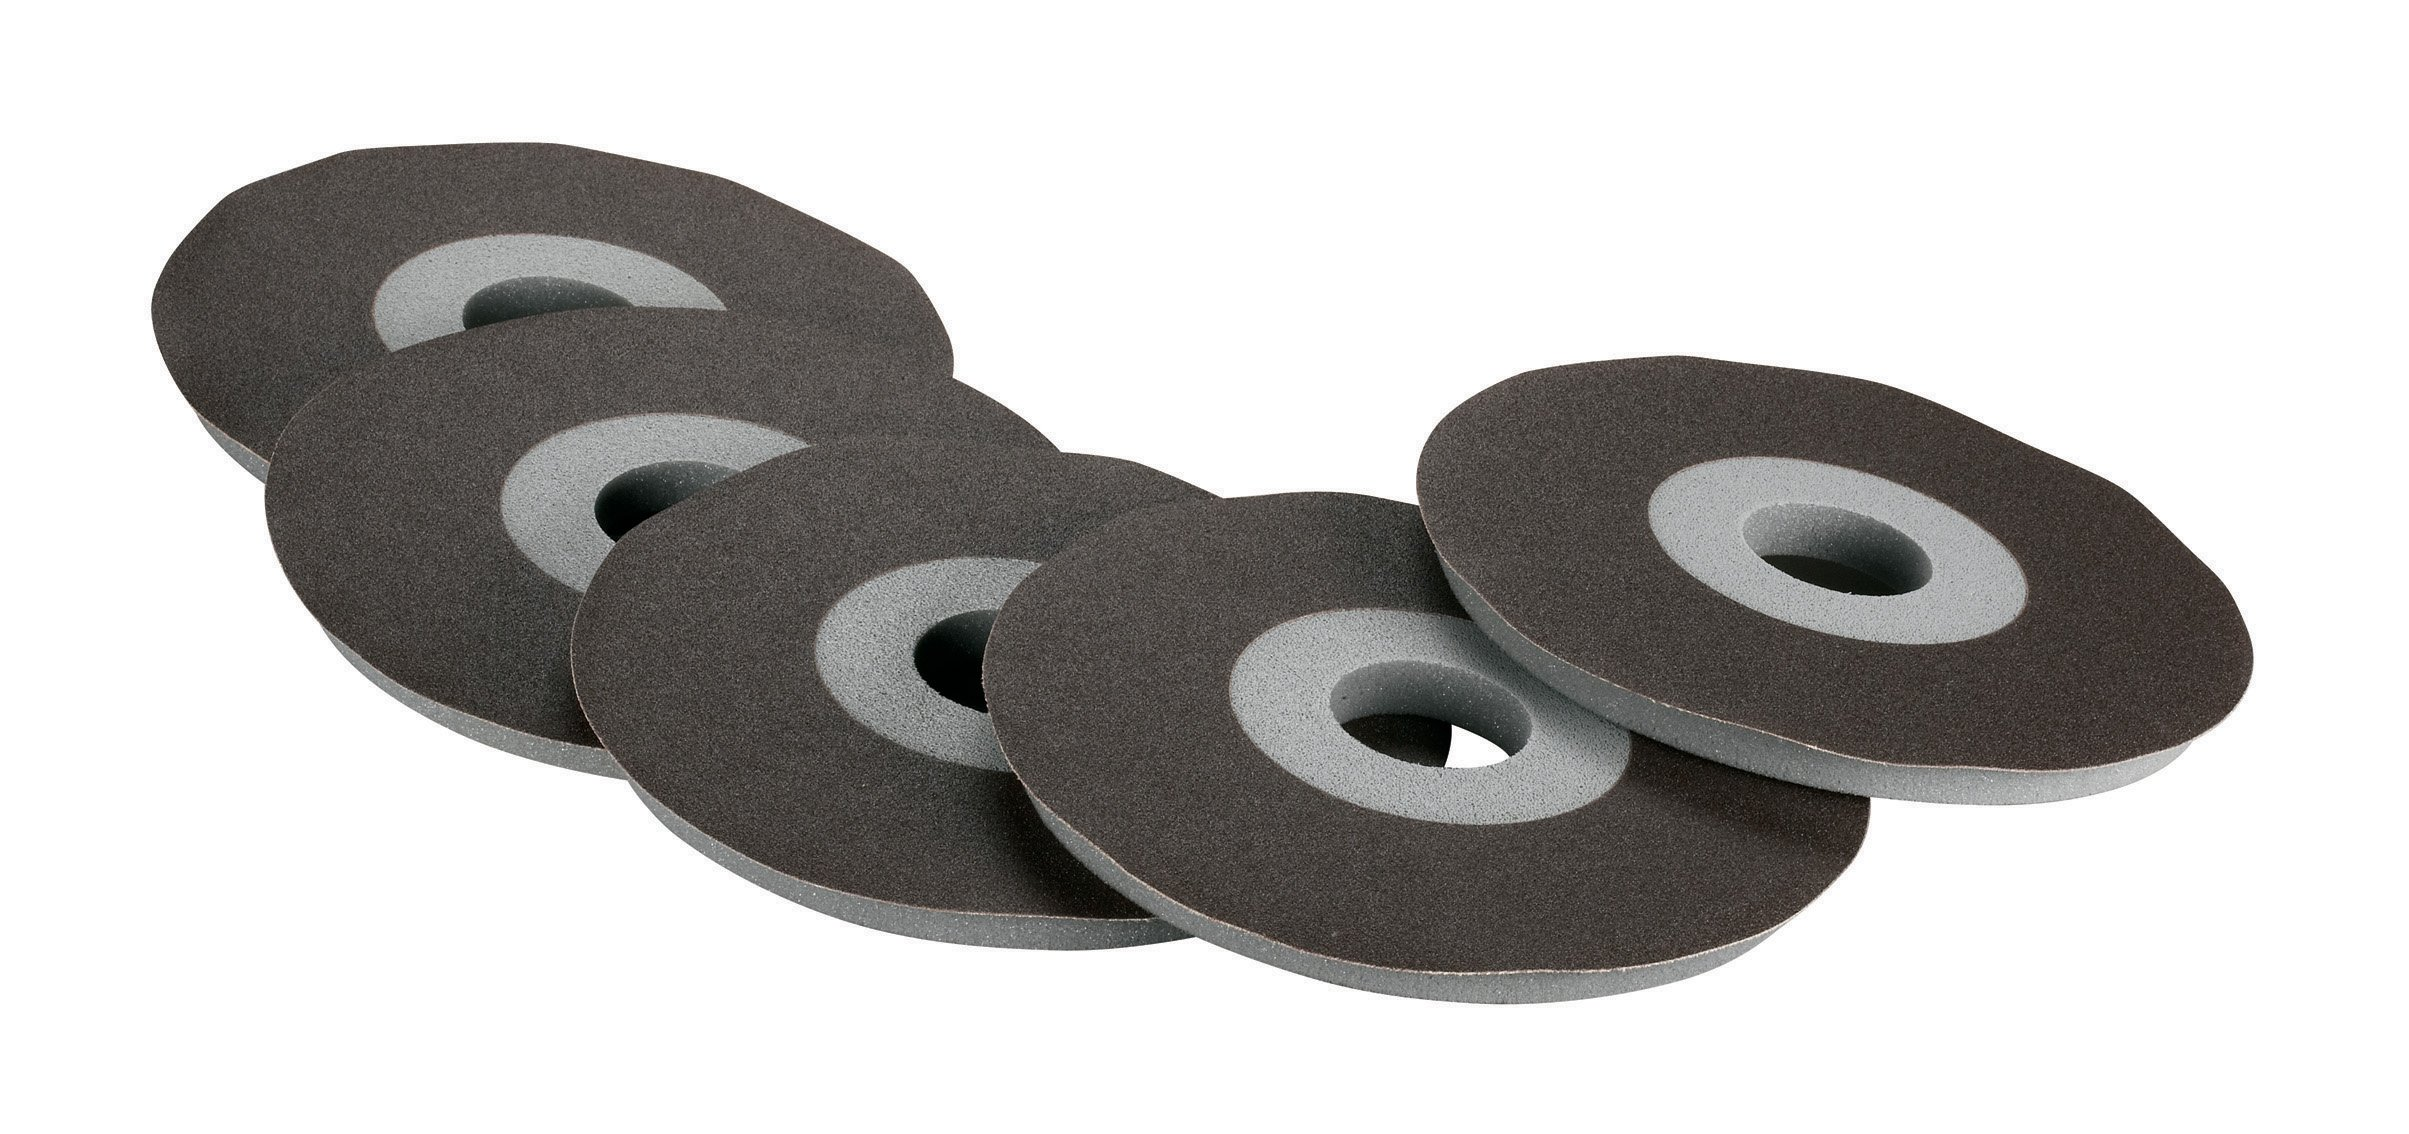 PORTER-CABLE 77225 220 Grit Drywall Sanding Pad (5-Pack) by PORTER-CABLE